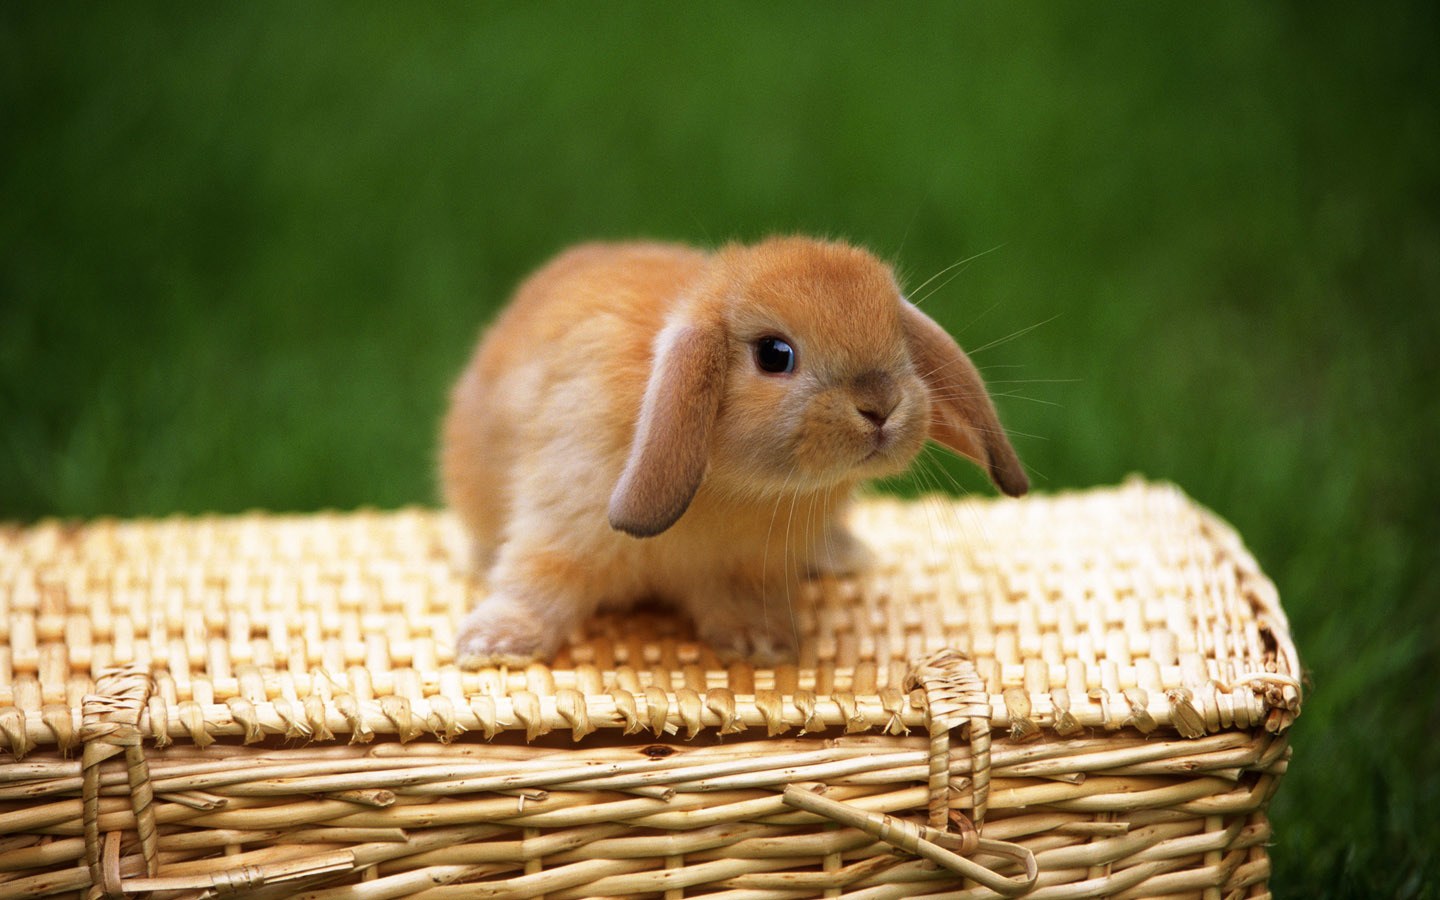 38675 download wallpaper Animals, Rabbits screensavers and pictures for free